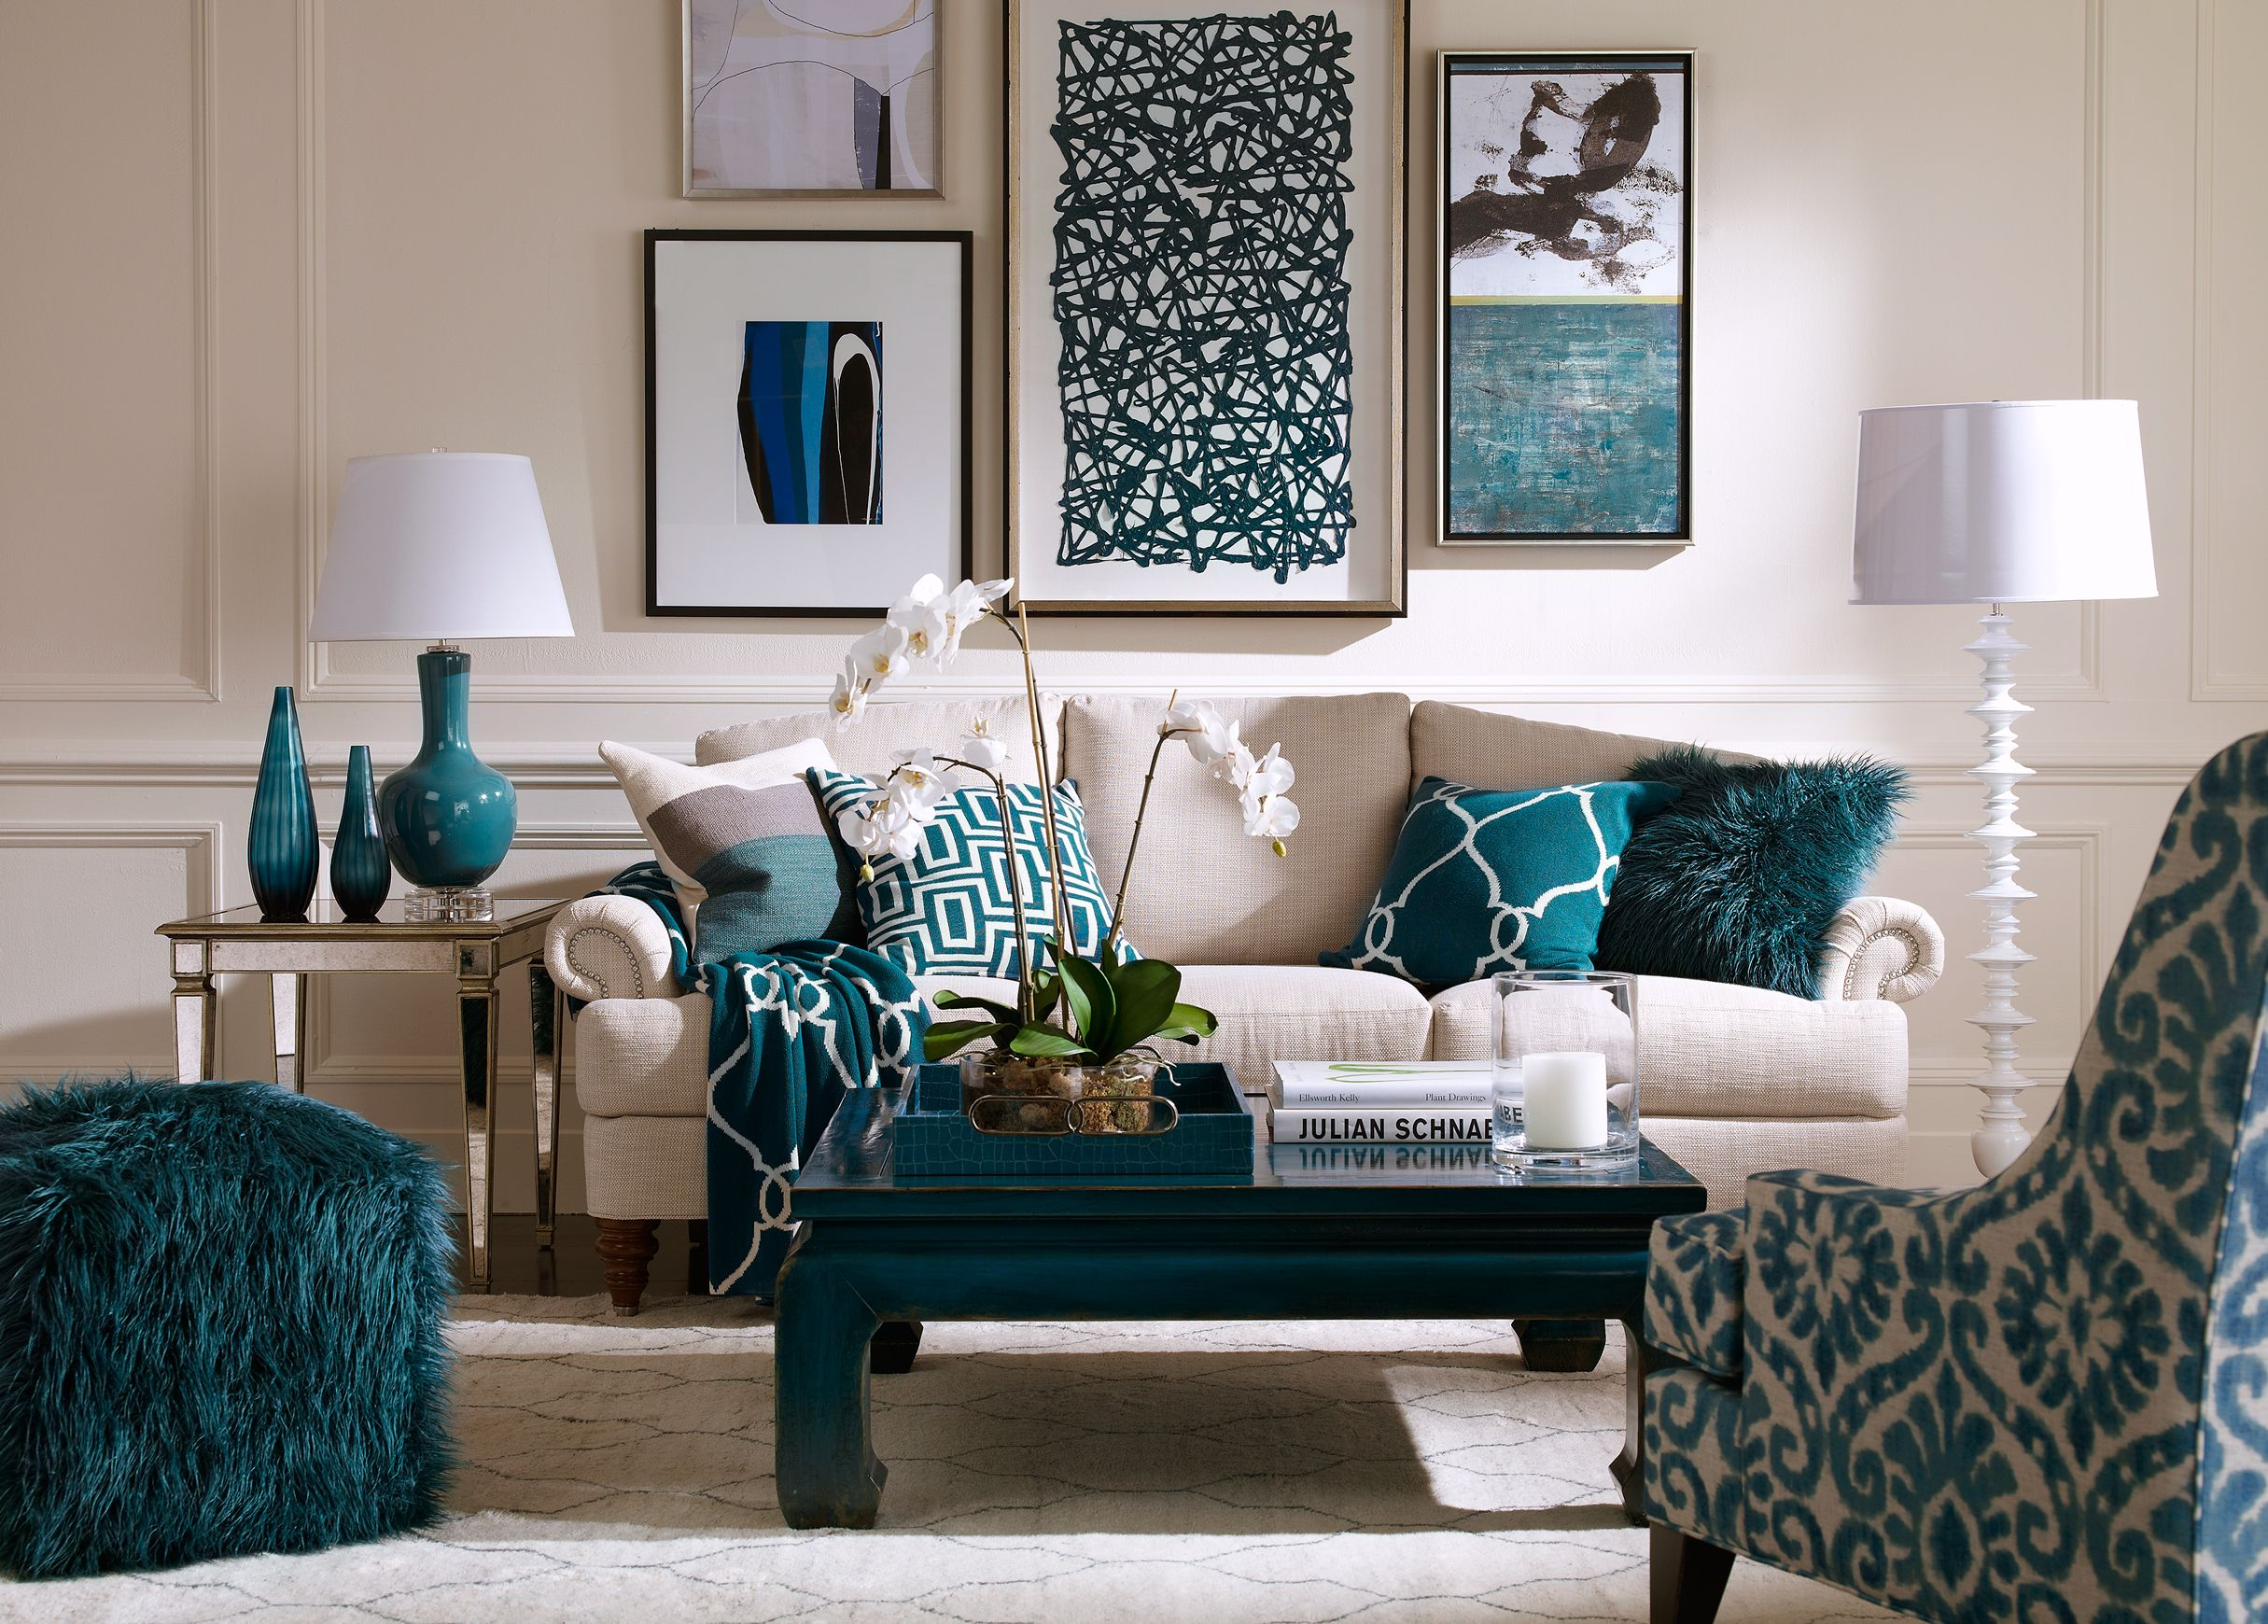 Charmant Turquoise Dining Room Ideas, Turquoise Rooms, Turquoise Living Room  Accessories, Using Turquoise In